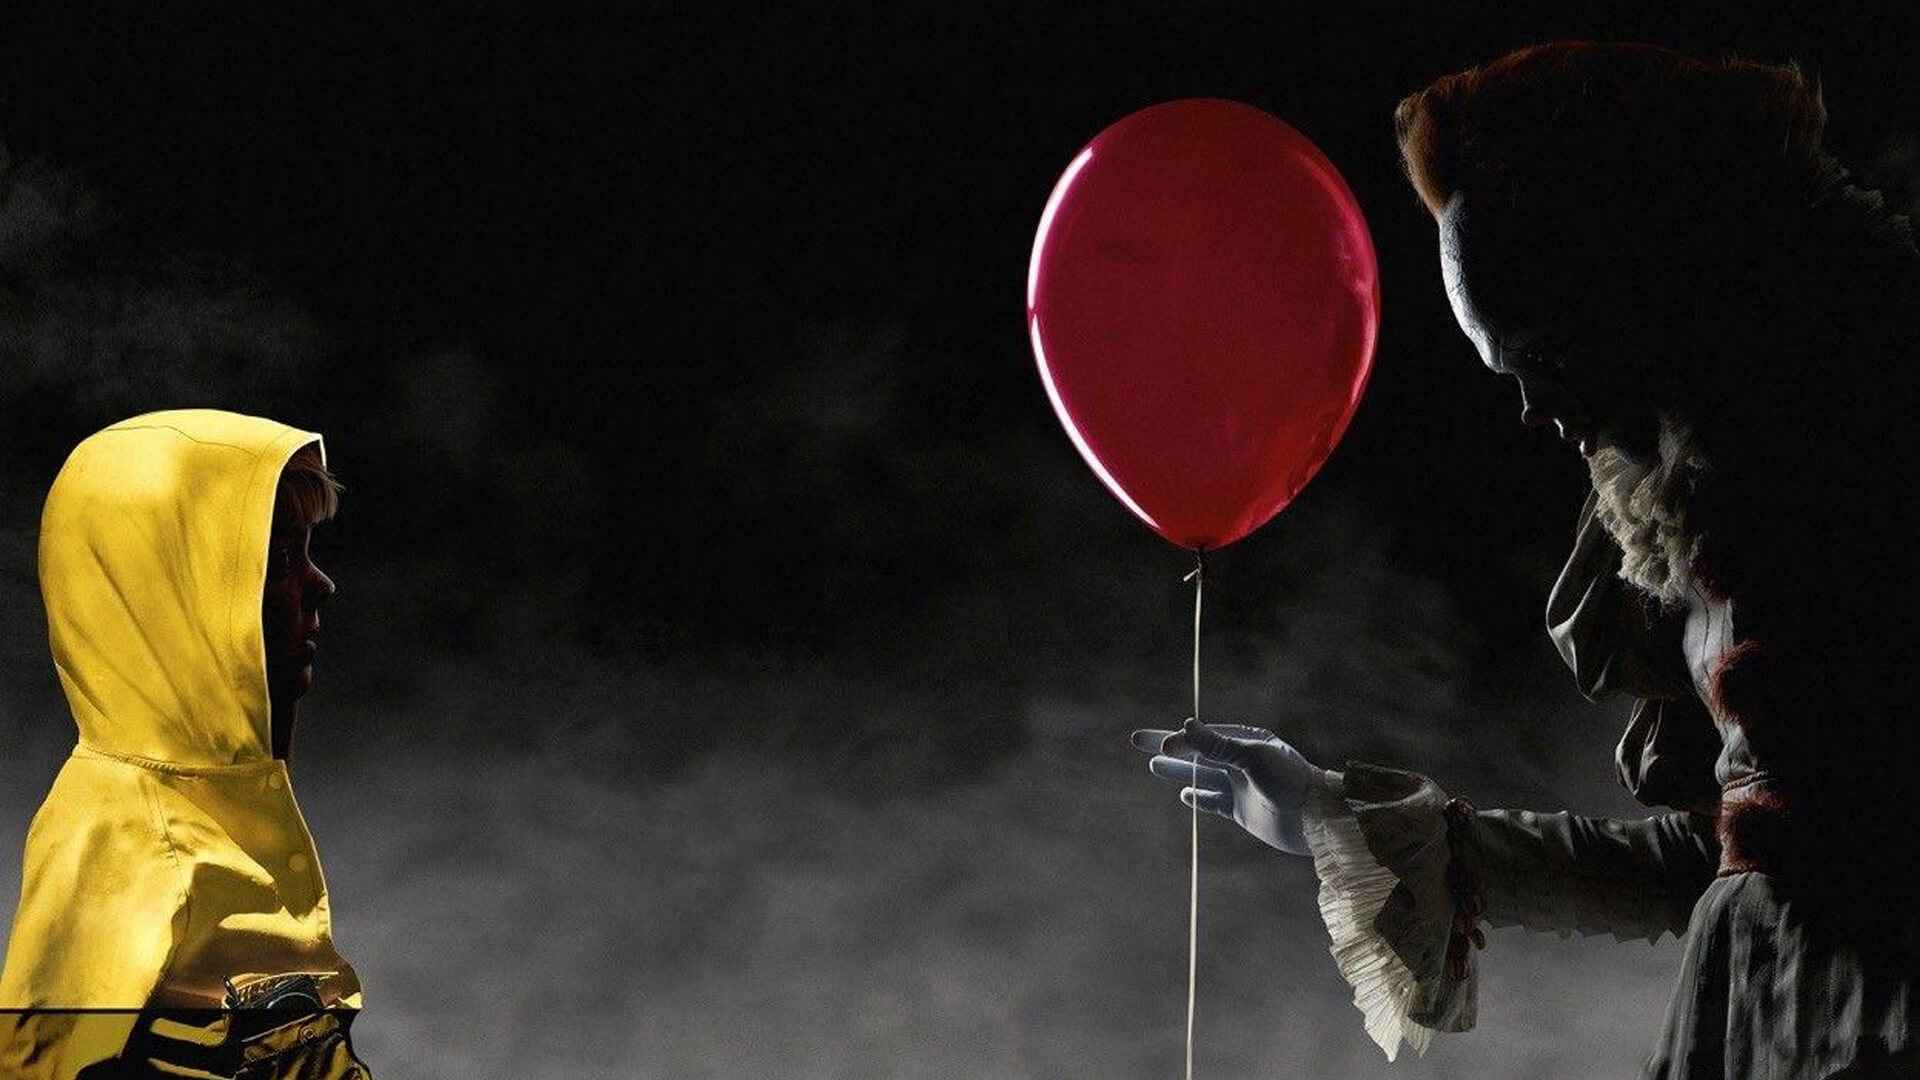 Exclusive: Sequel To Stephen King's IT Book in the Works; Could We Be Getting A Third IT Movie?